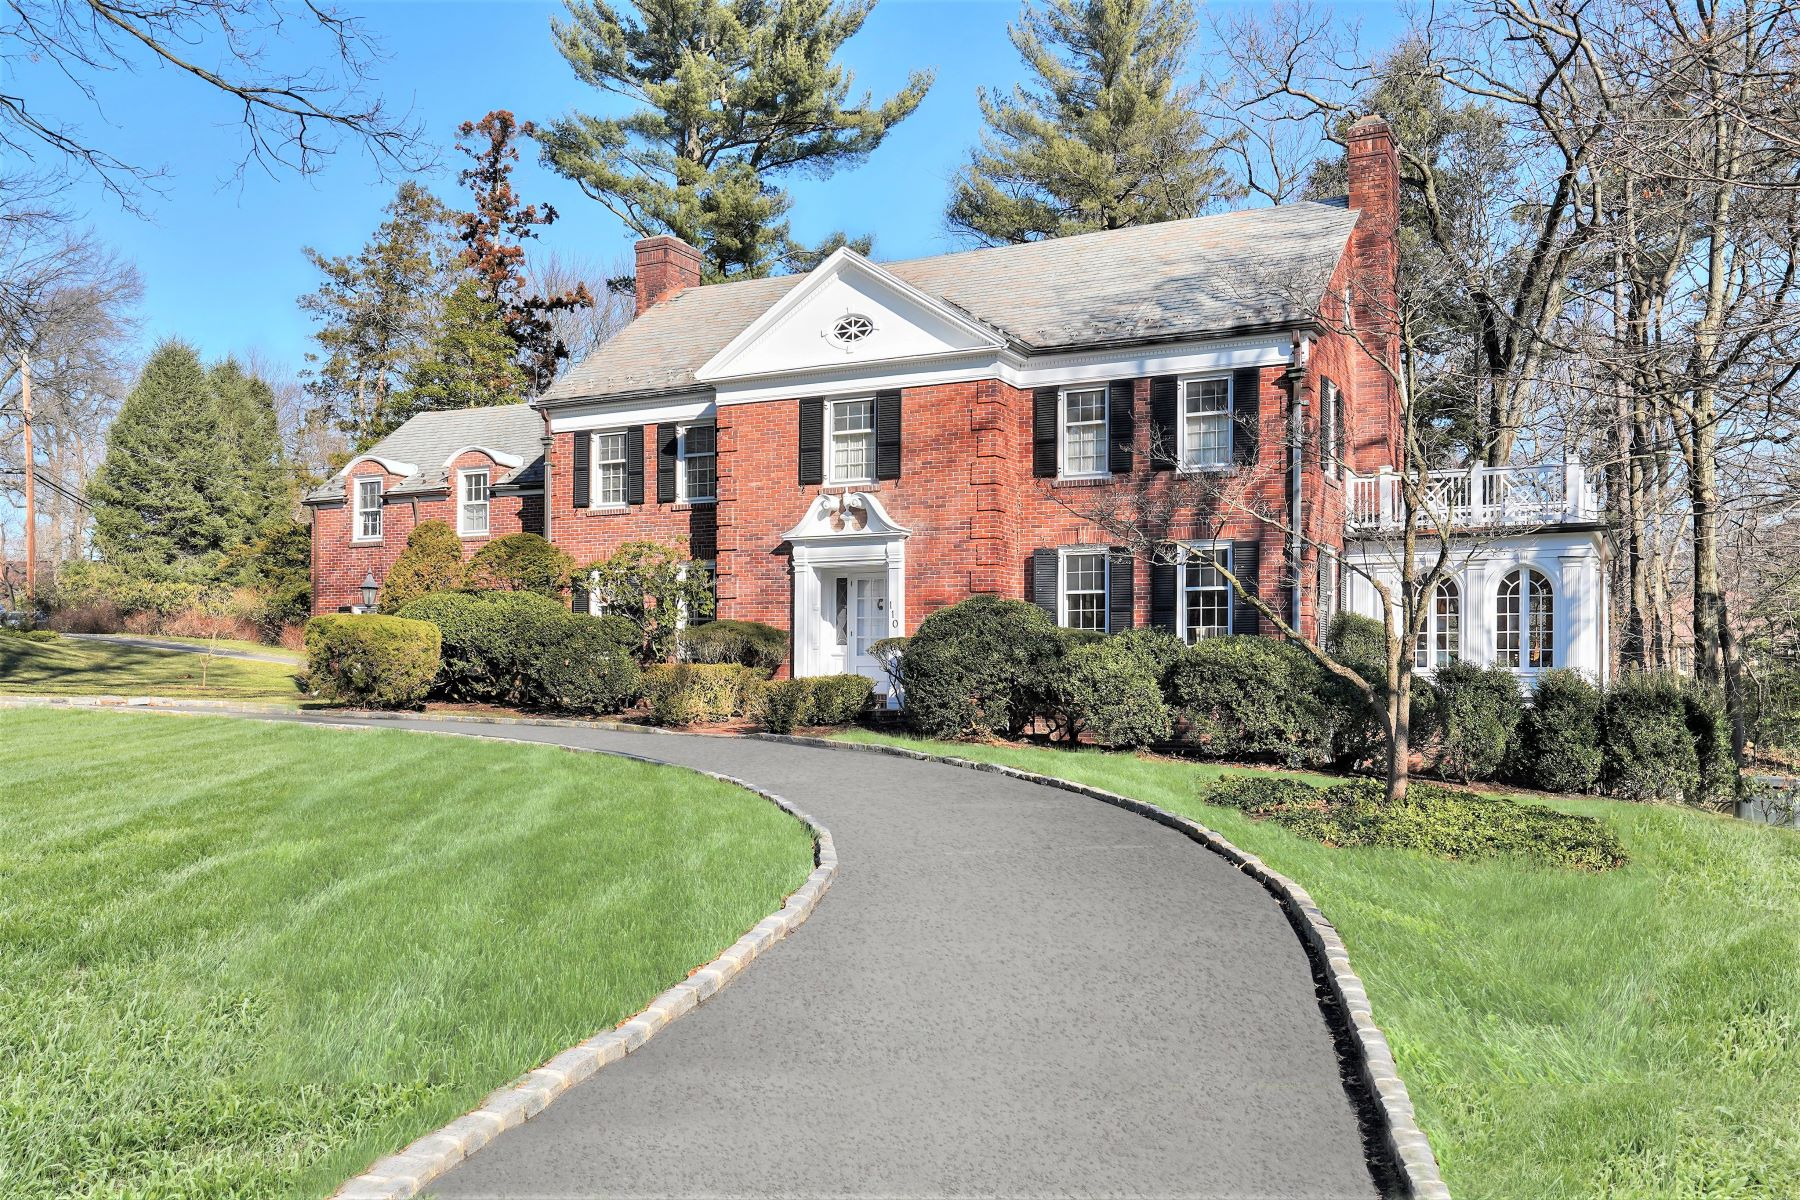 Single Family Homes for Sale at Classic Colonial 110 Highland Avenue, Short Hills, New Jersey 07078 United States